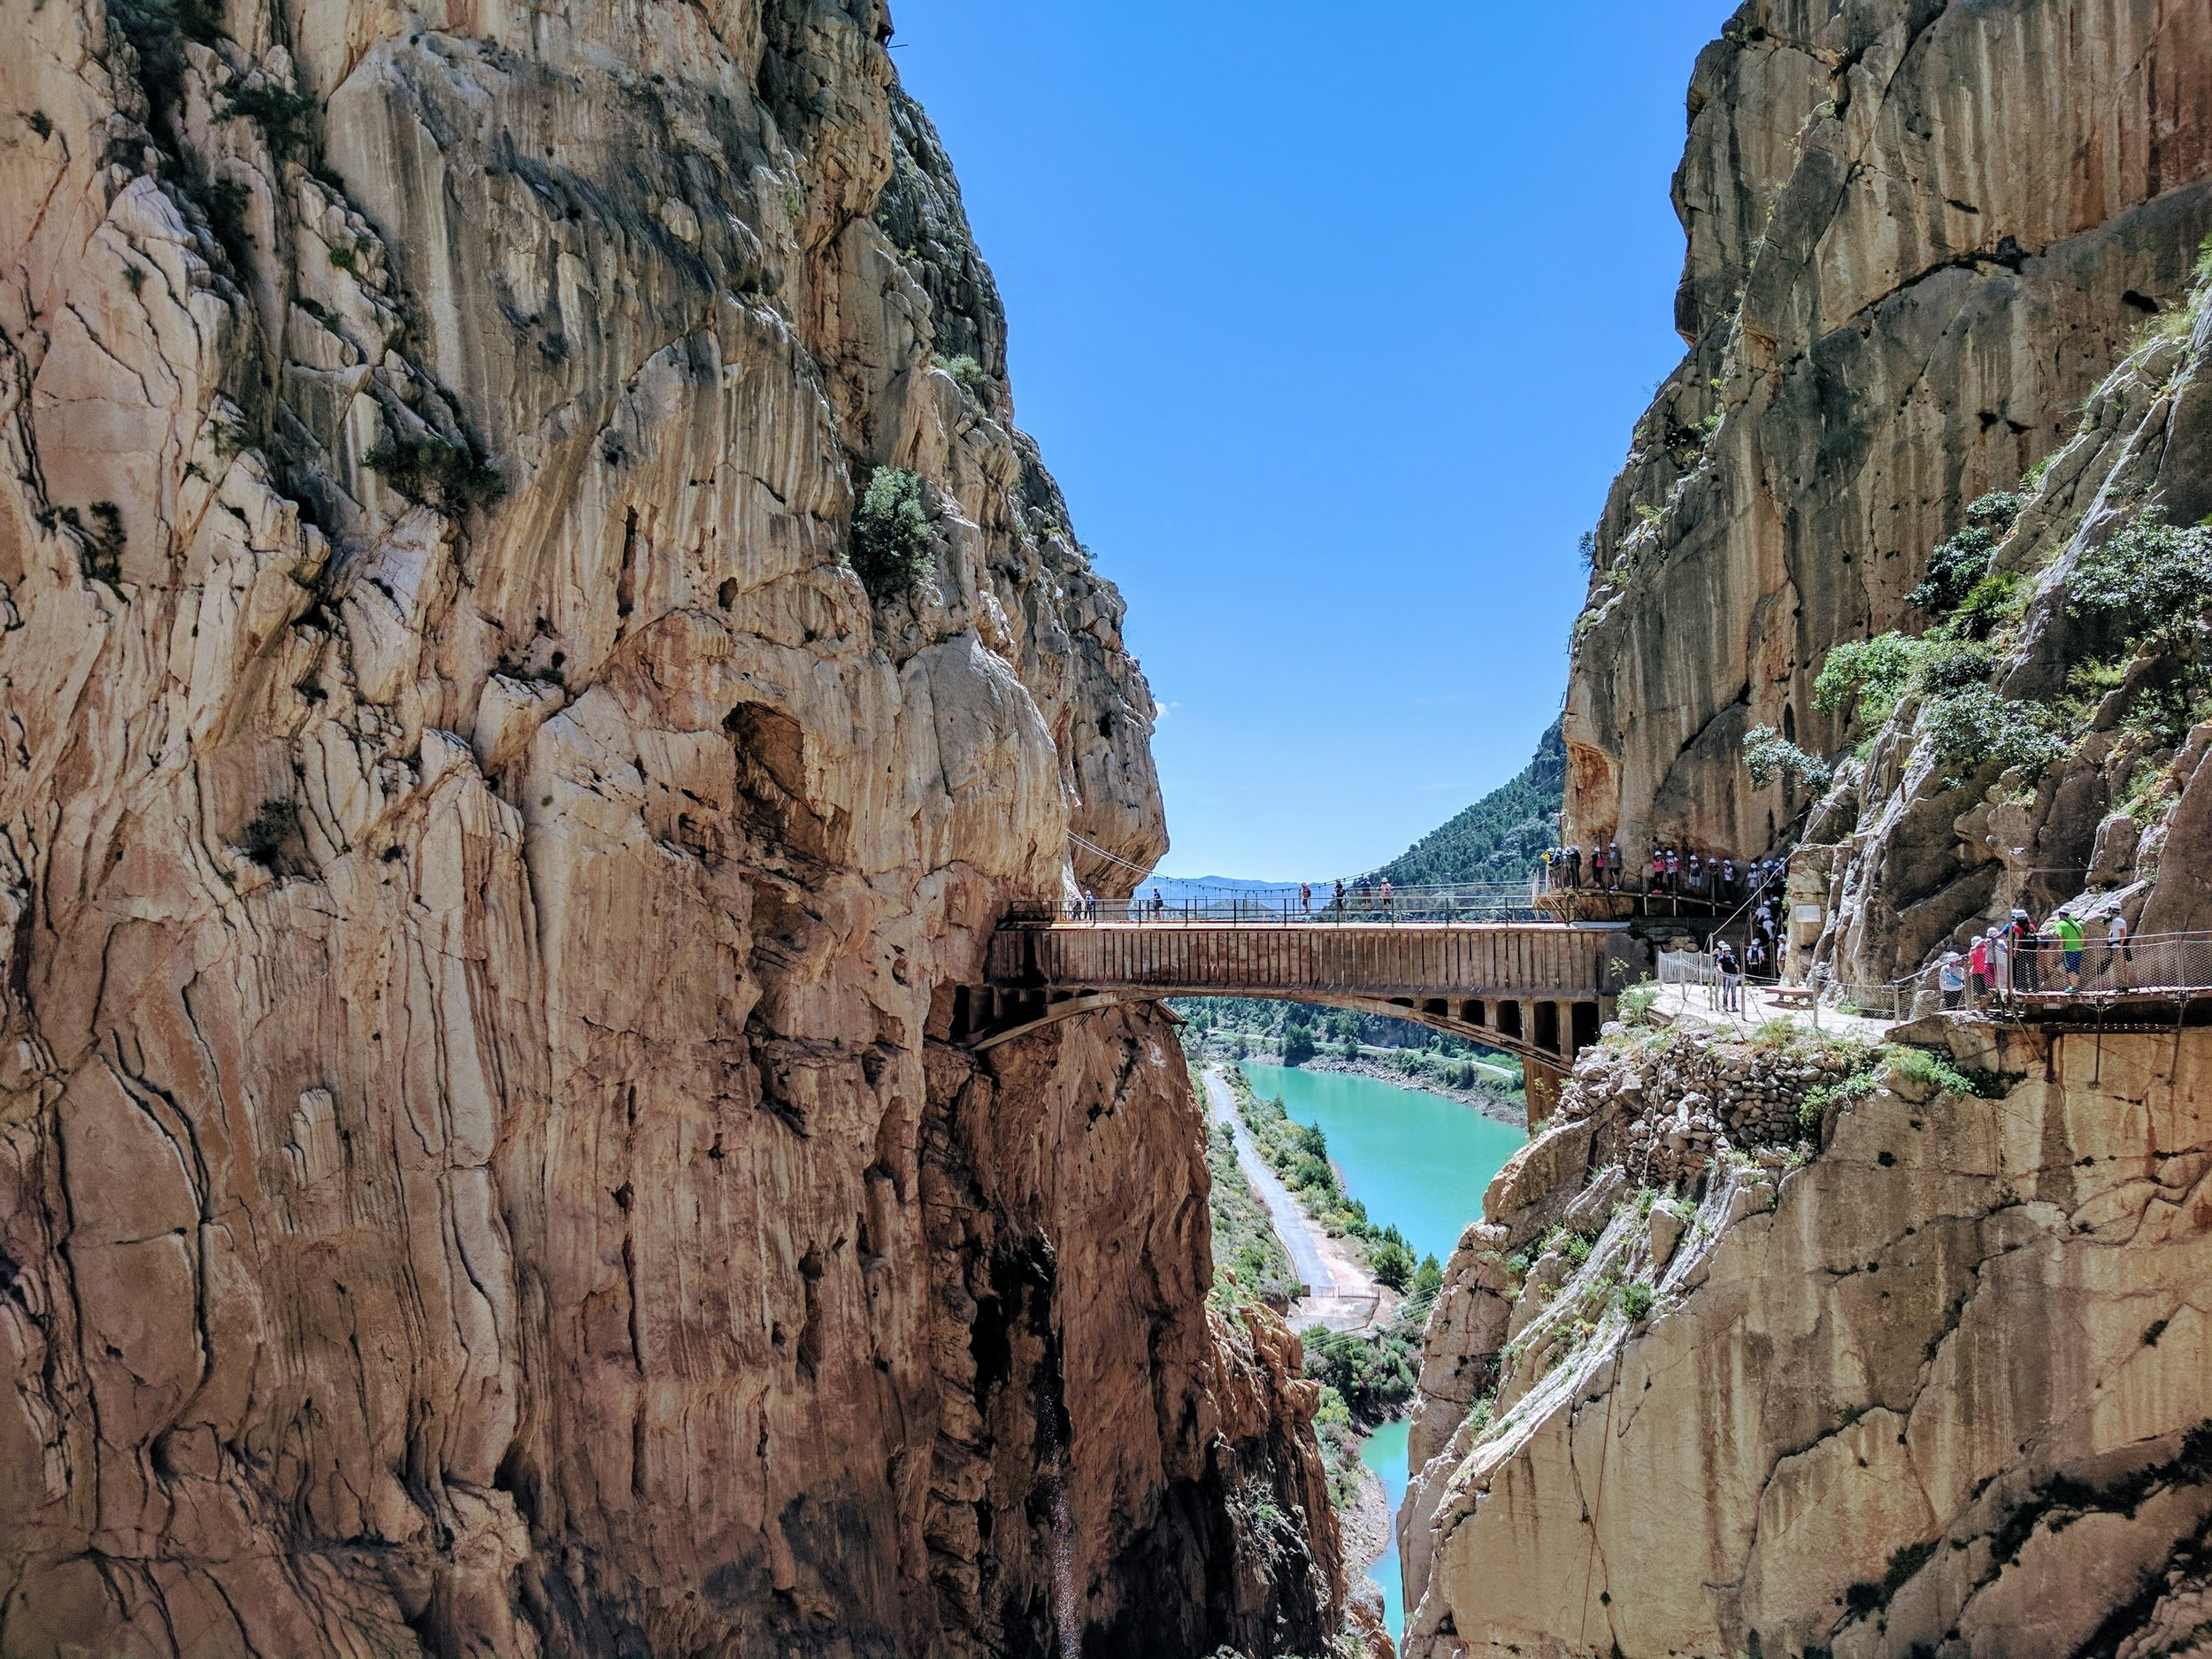 Crossing a new bridge in Caminito del Rey after renovations in 2015.